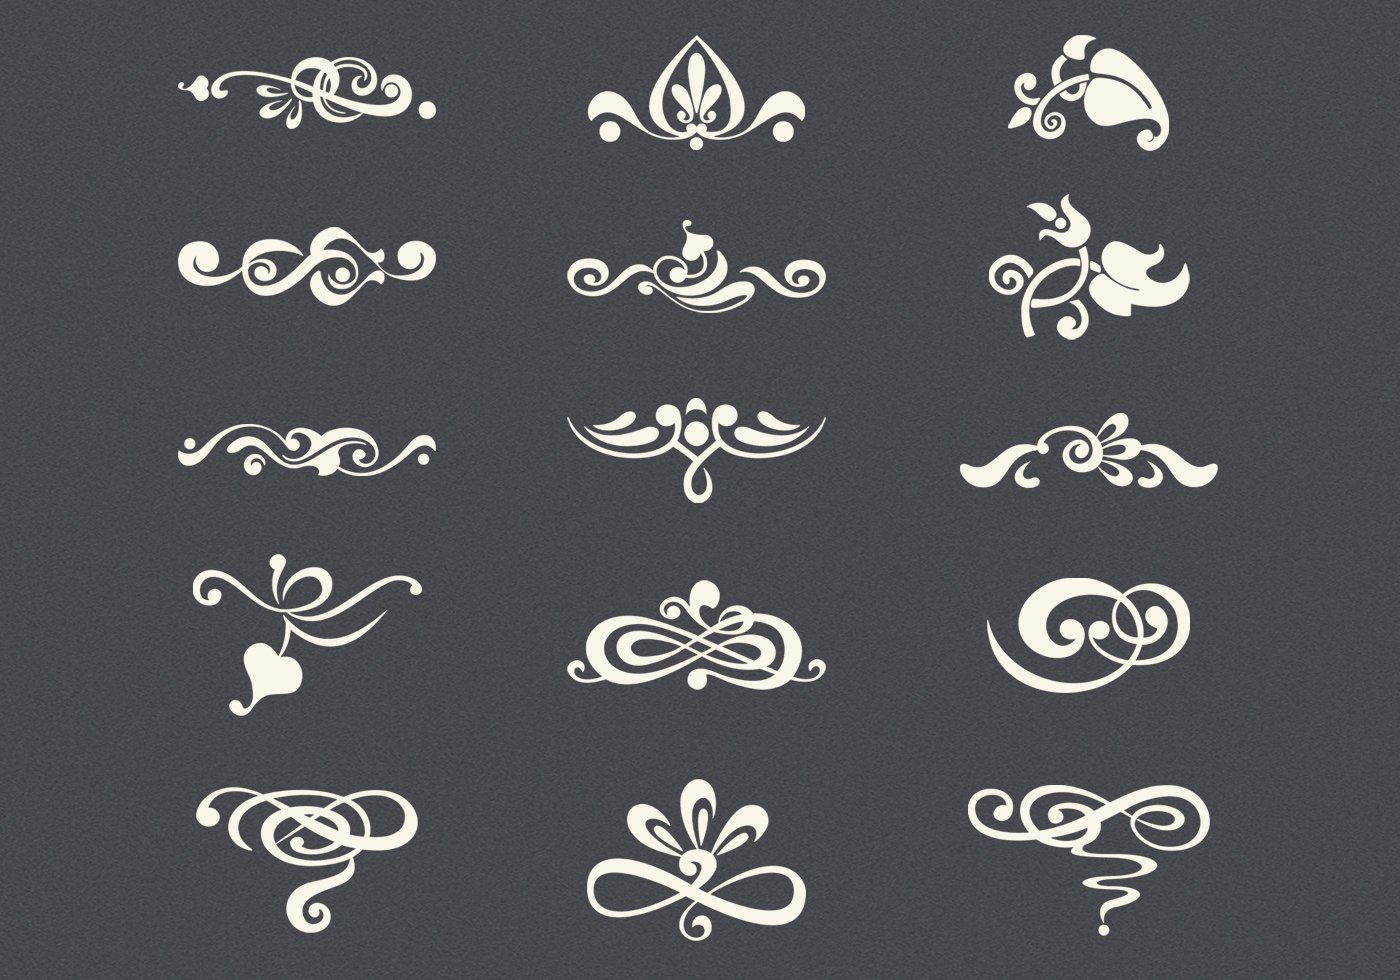 Vintage Flourishes Psd Set Free Photoshop Brushes At